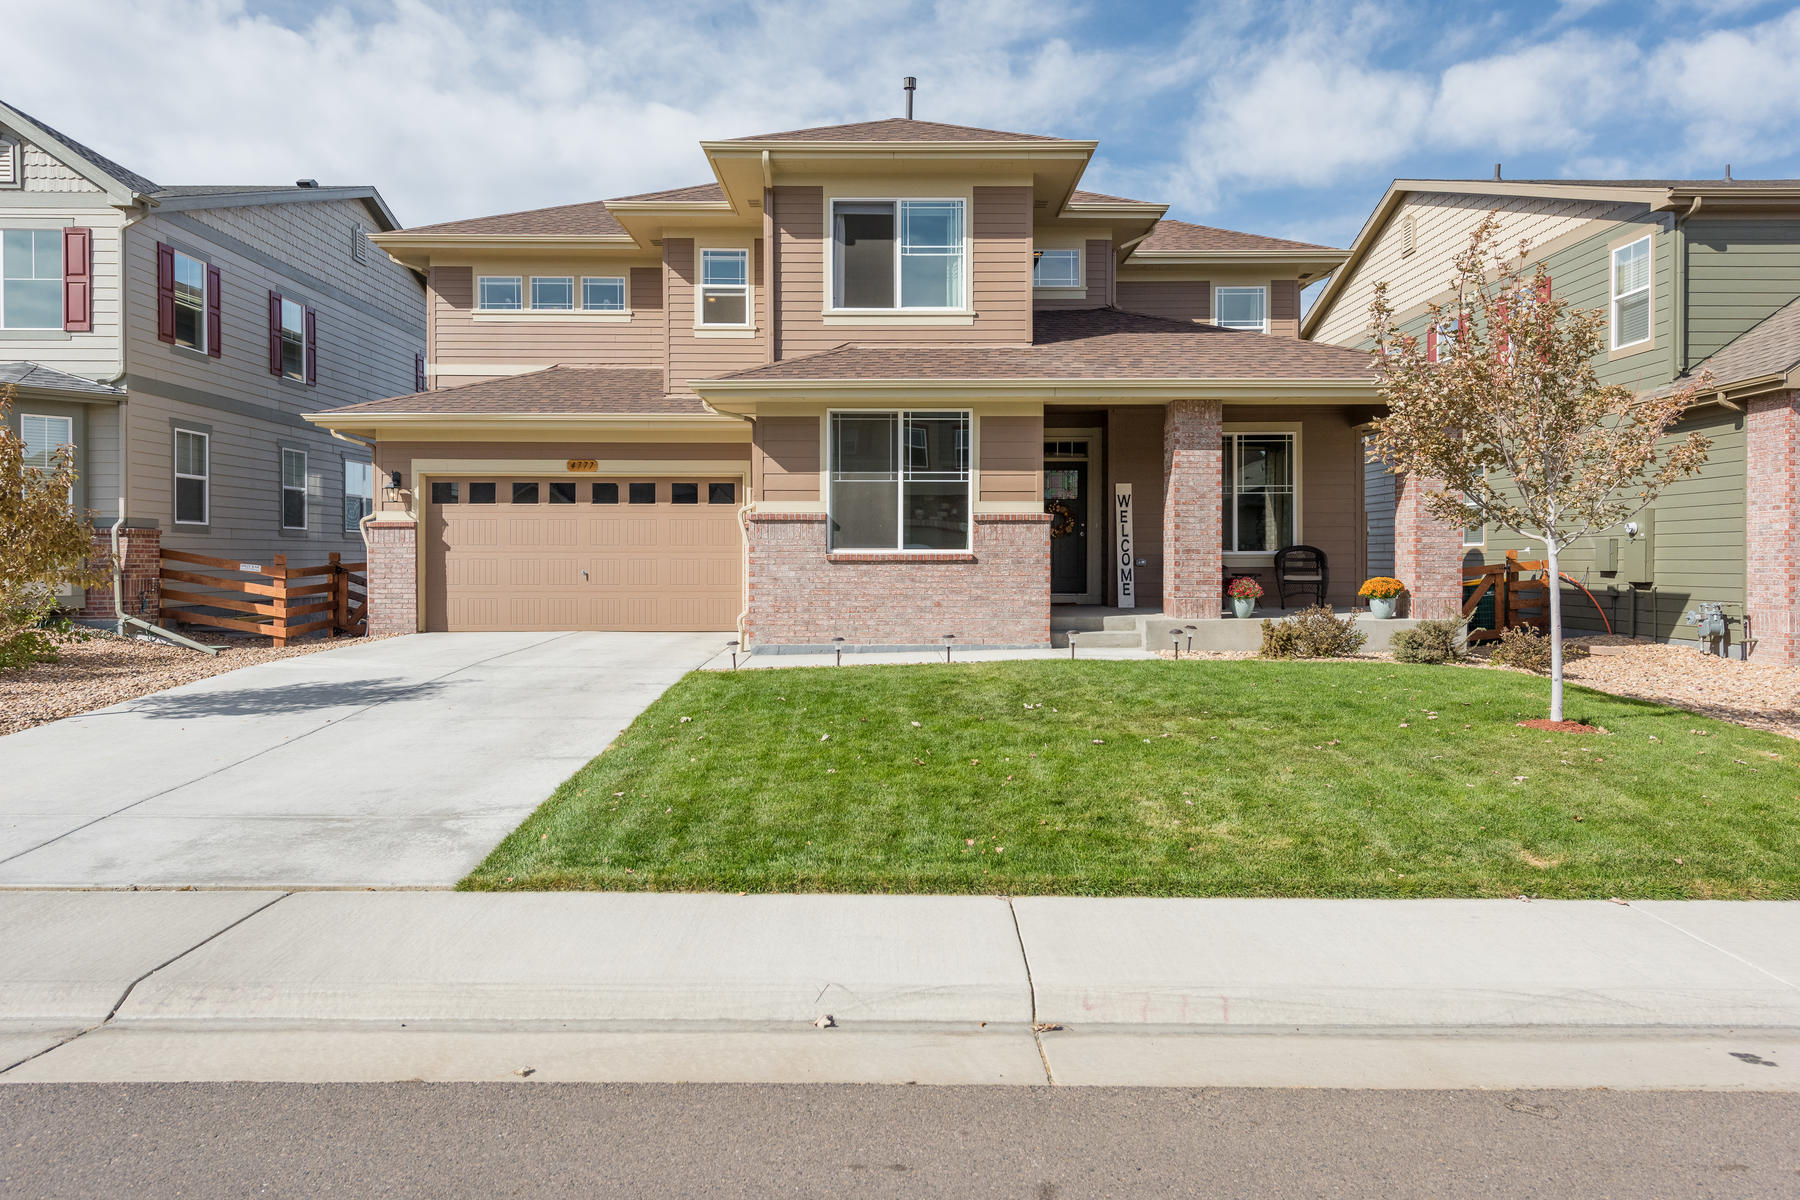 Single Family Homes for Sale at Don't Miss Your Opportunity to Own a FANTASTIC Home in a Fantastic Location! 4777 S Sicily Street Aurora, Colorado 80015 United States